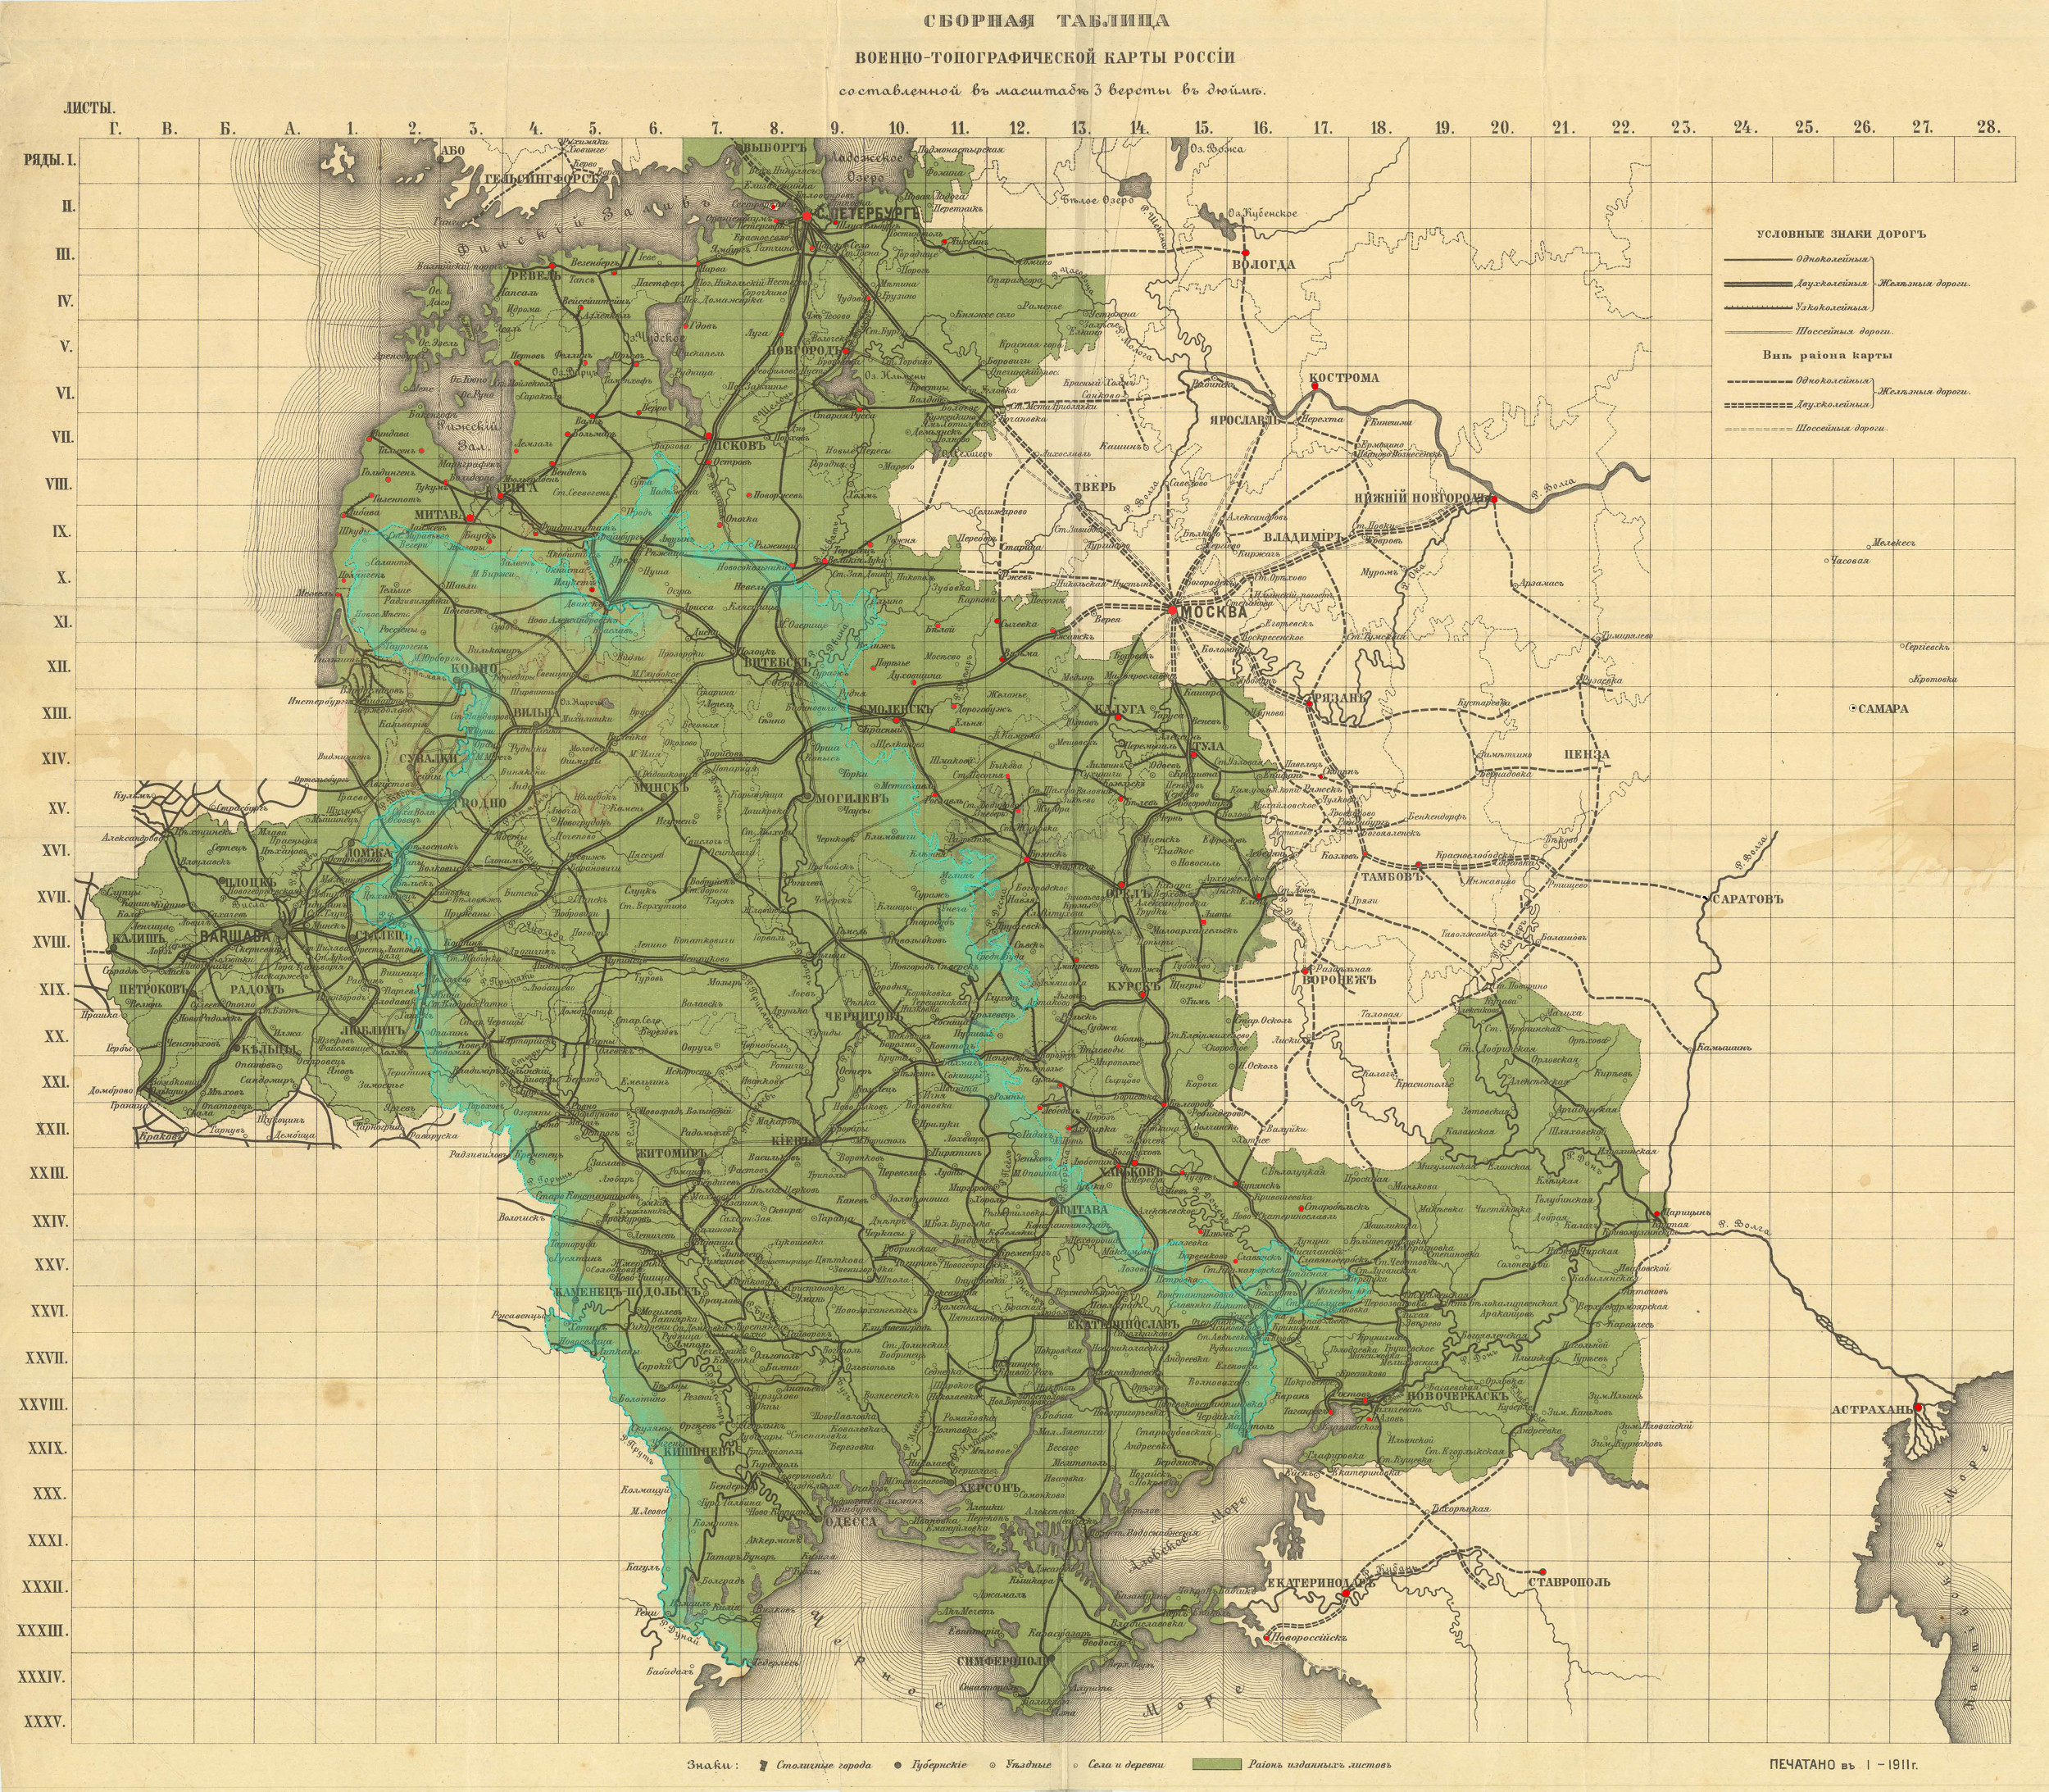 Topographic Maps Of Eastern Europe - Military topographic maps